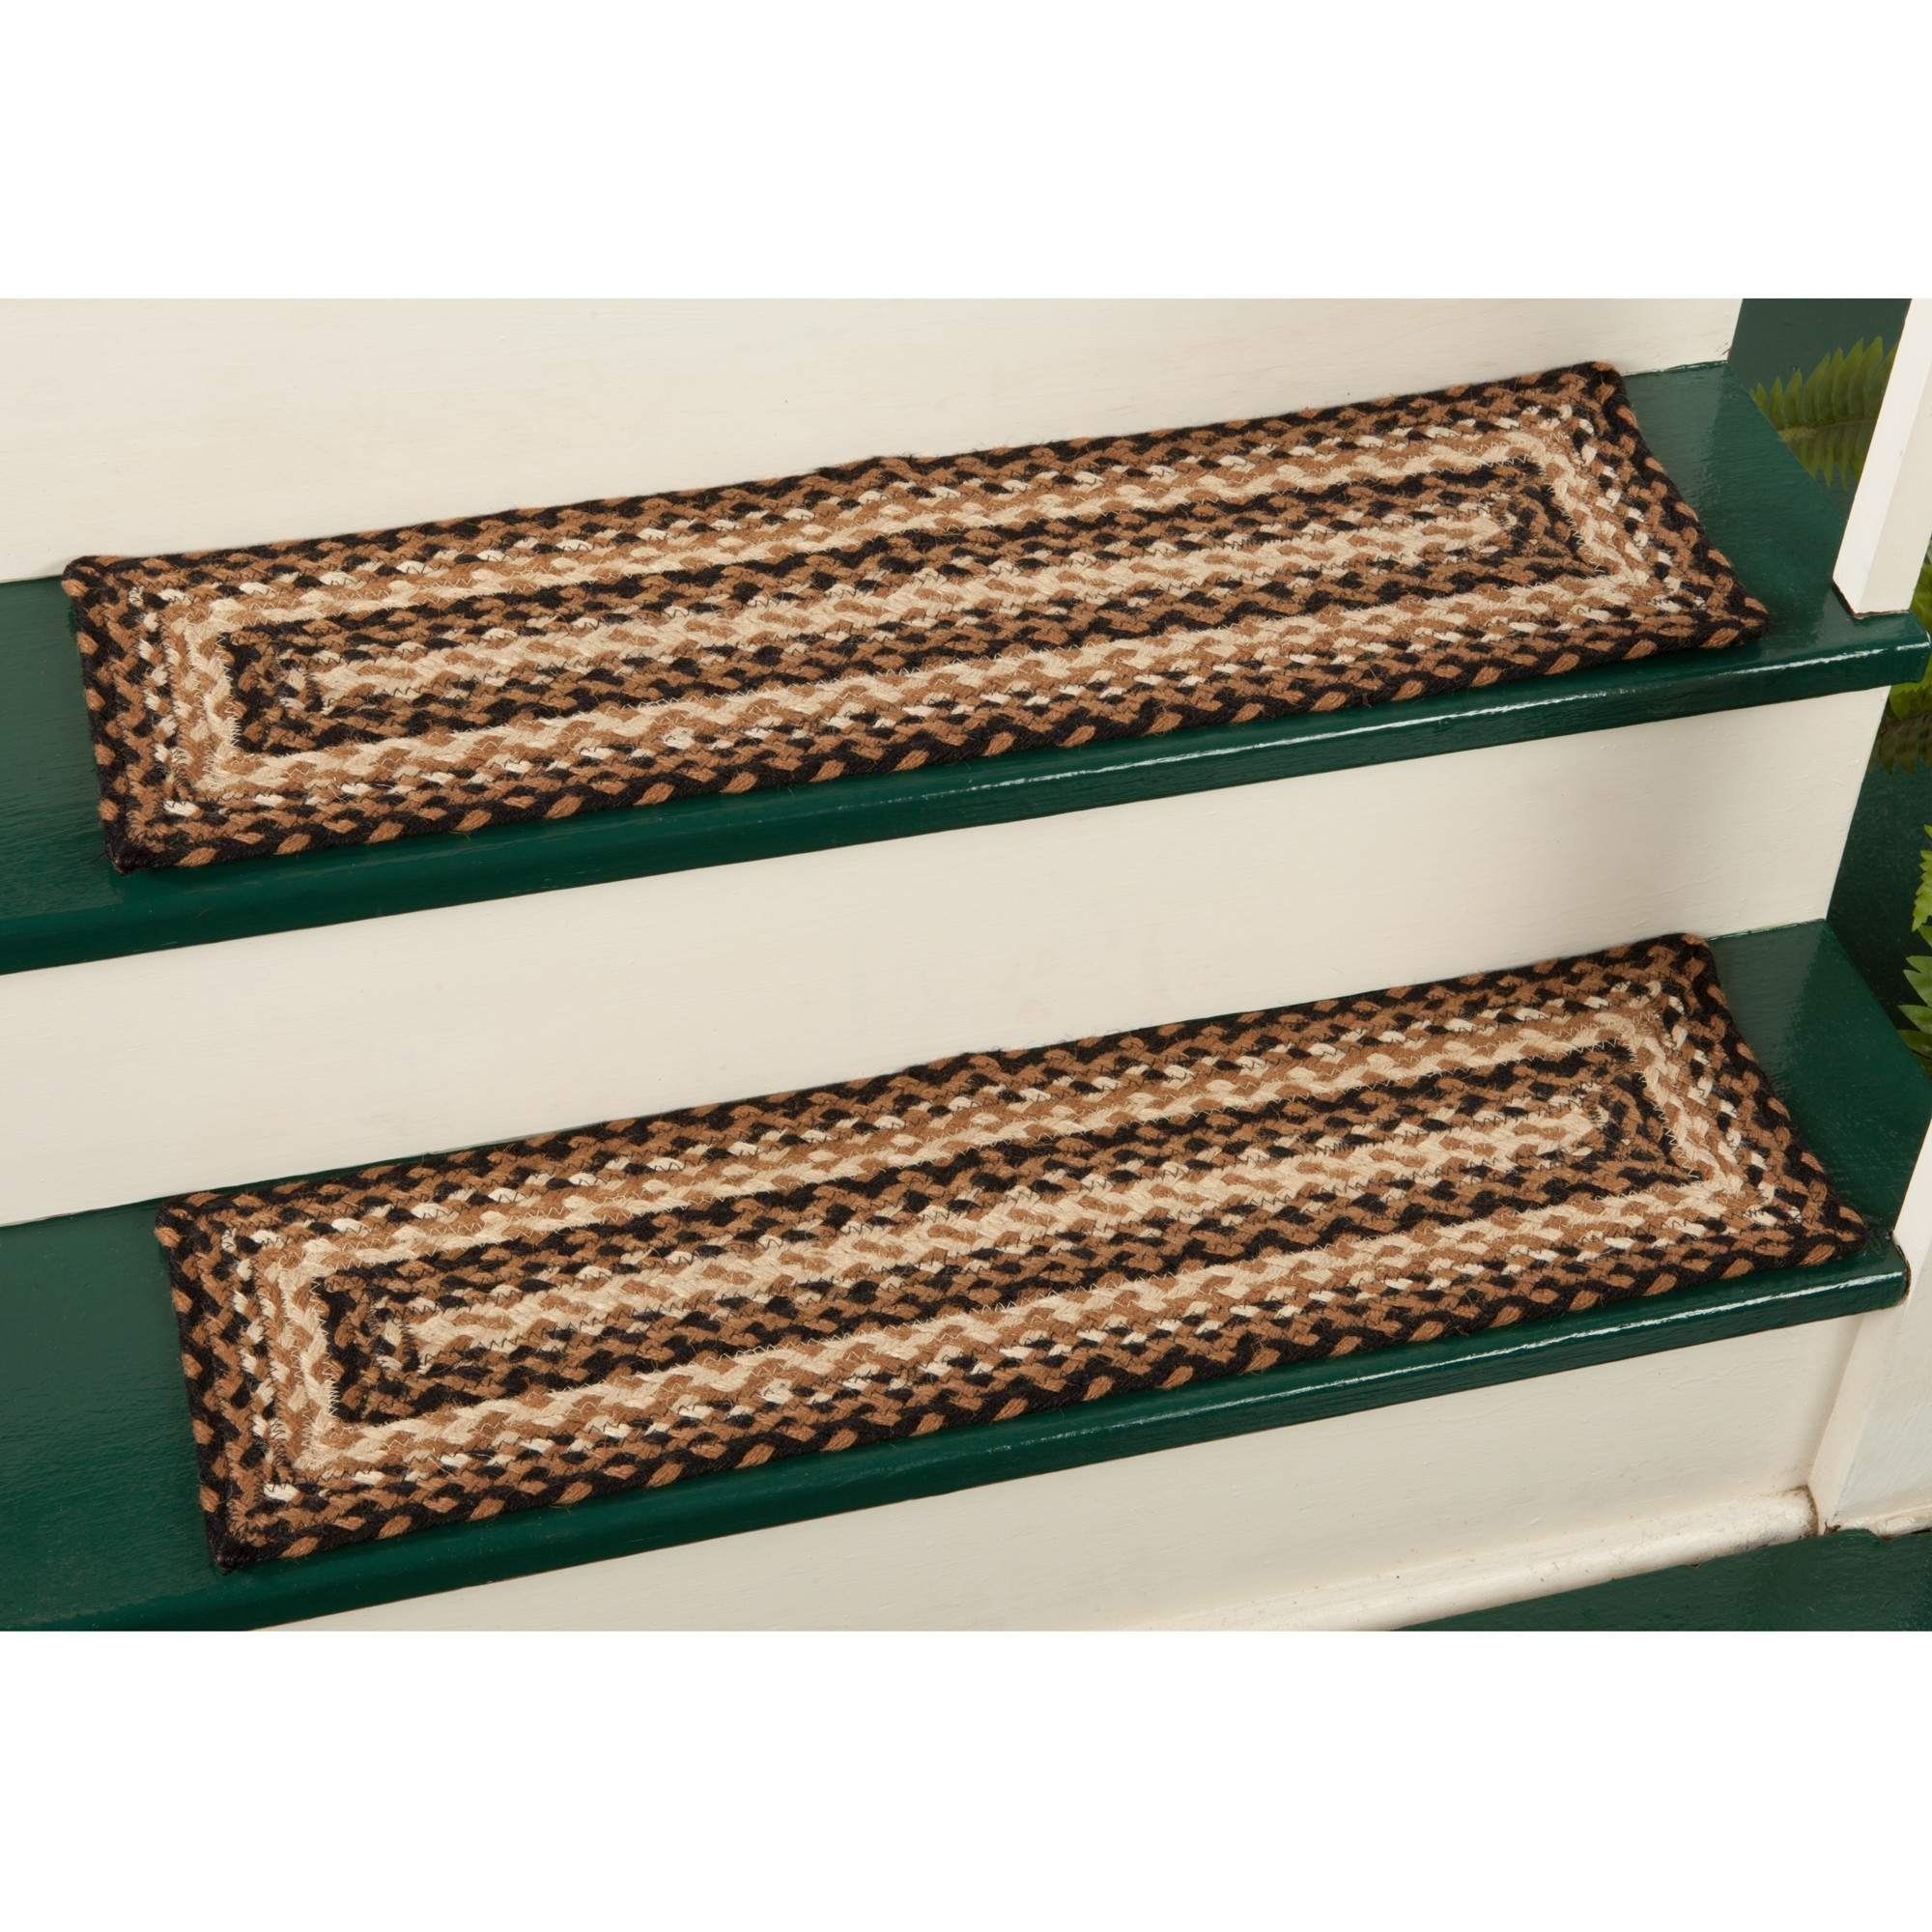 Stair Tread Rugs Cievi Home Pertaining To Stair Treads And Rugs (#16 of 20)